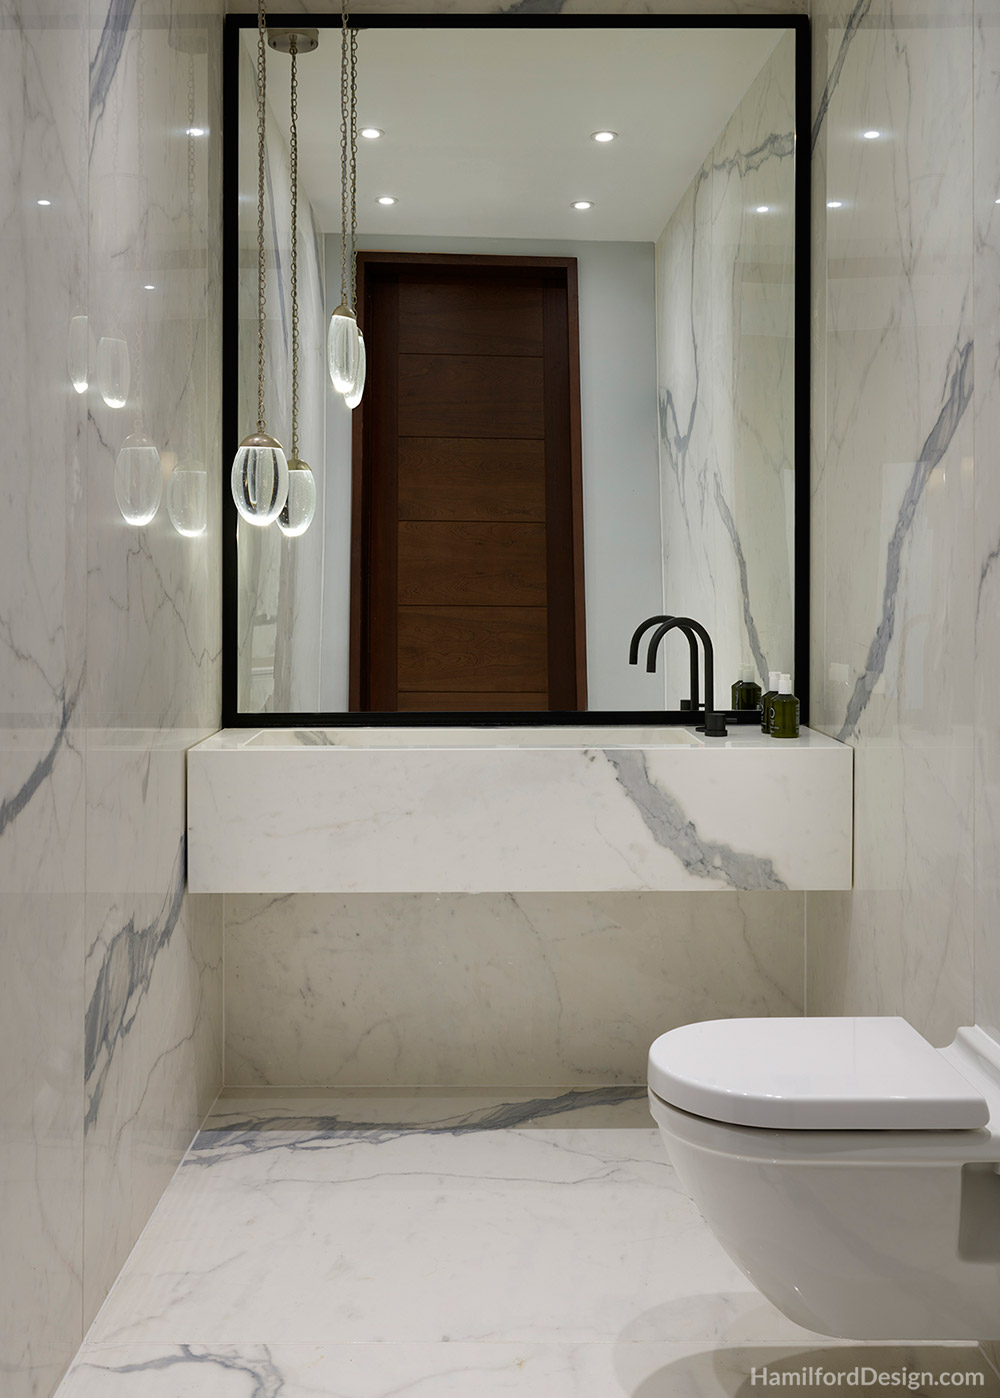 Bathroom - Cloakroom with White Marble